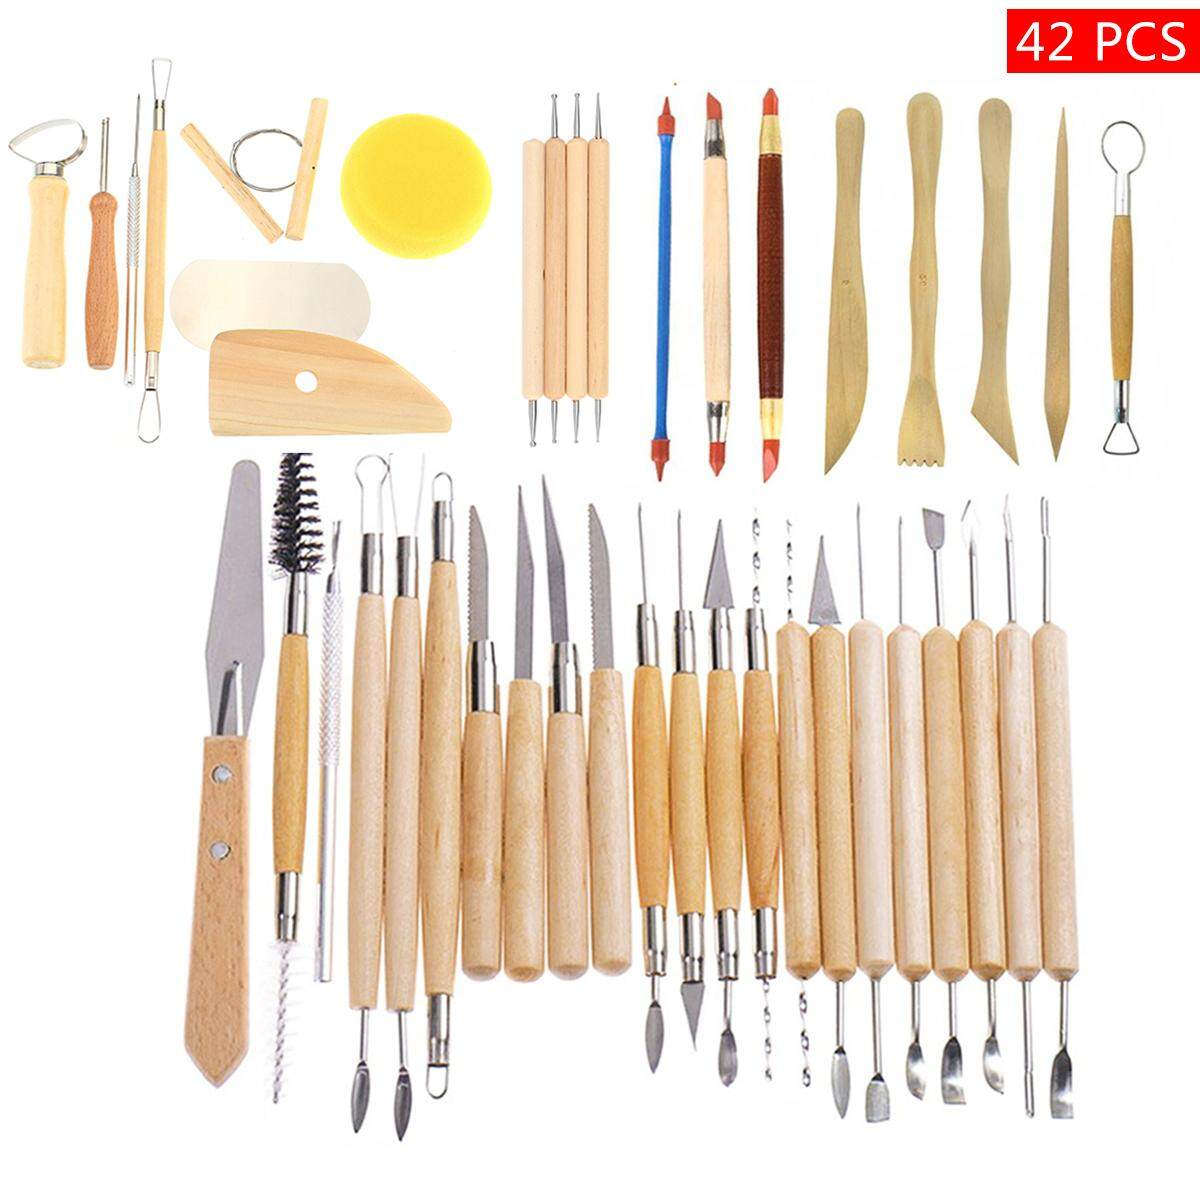 Mua 42Pcs Wooden Clay Sculpting Tools Pottery Carving Tool Set Modeling Craft Hobby - intl